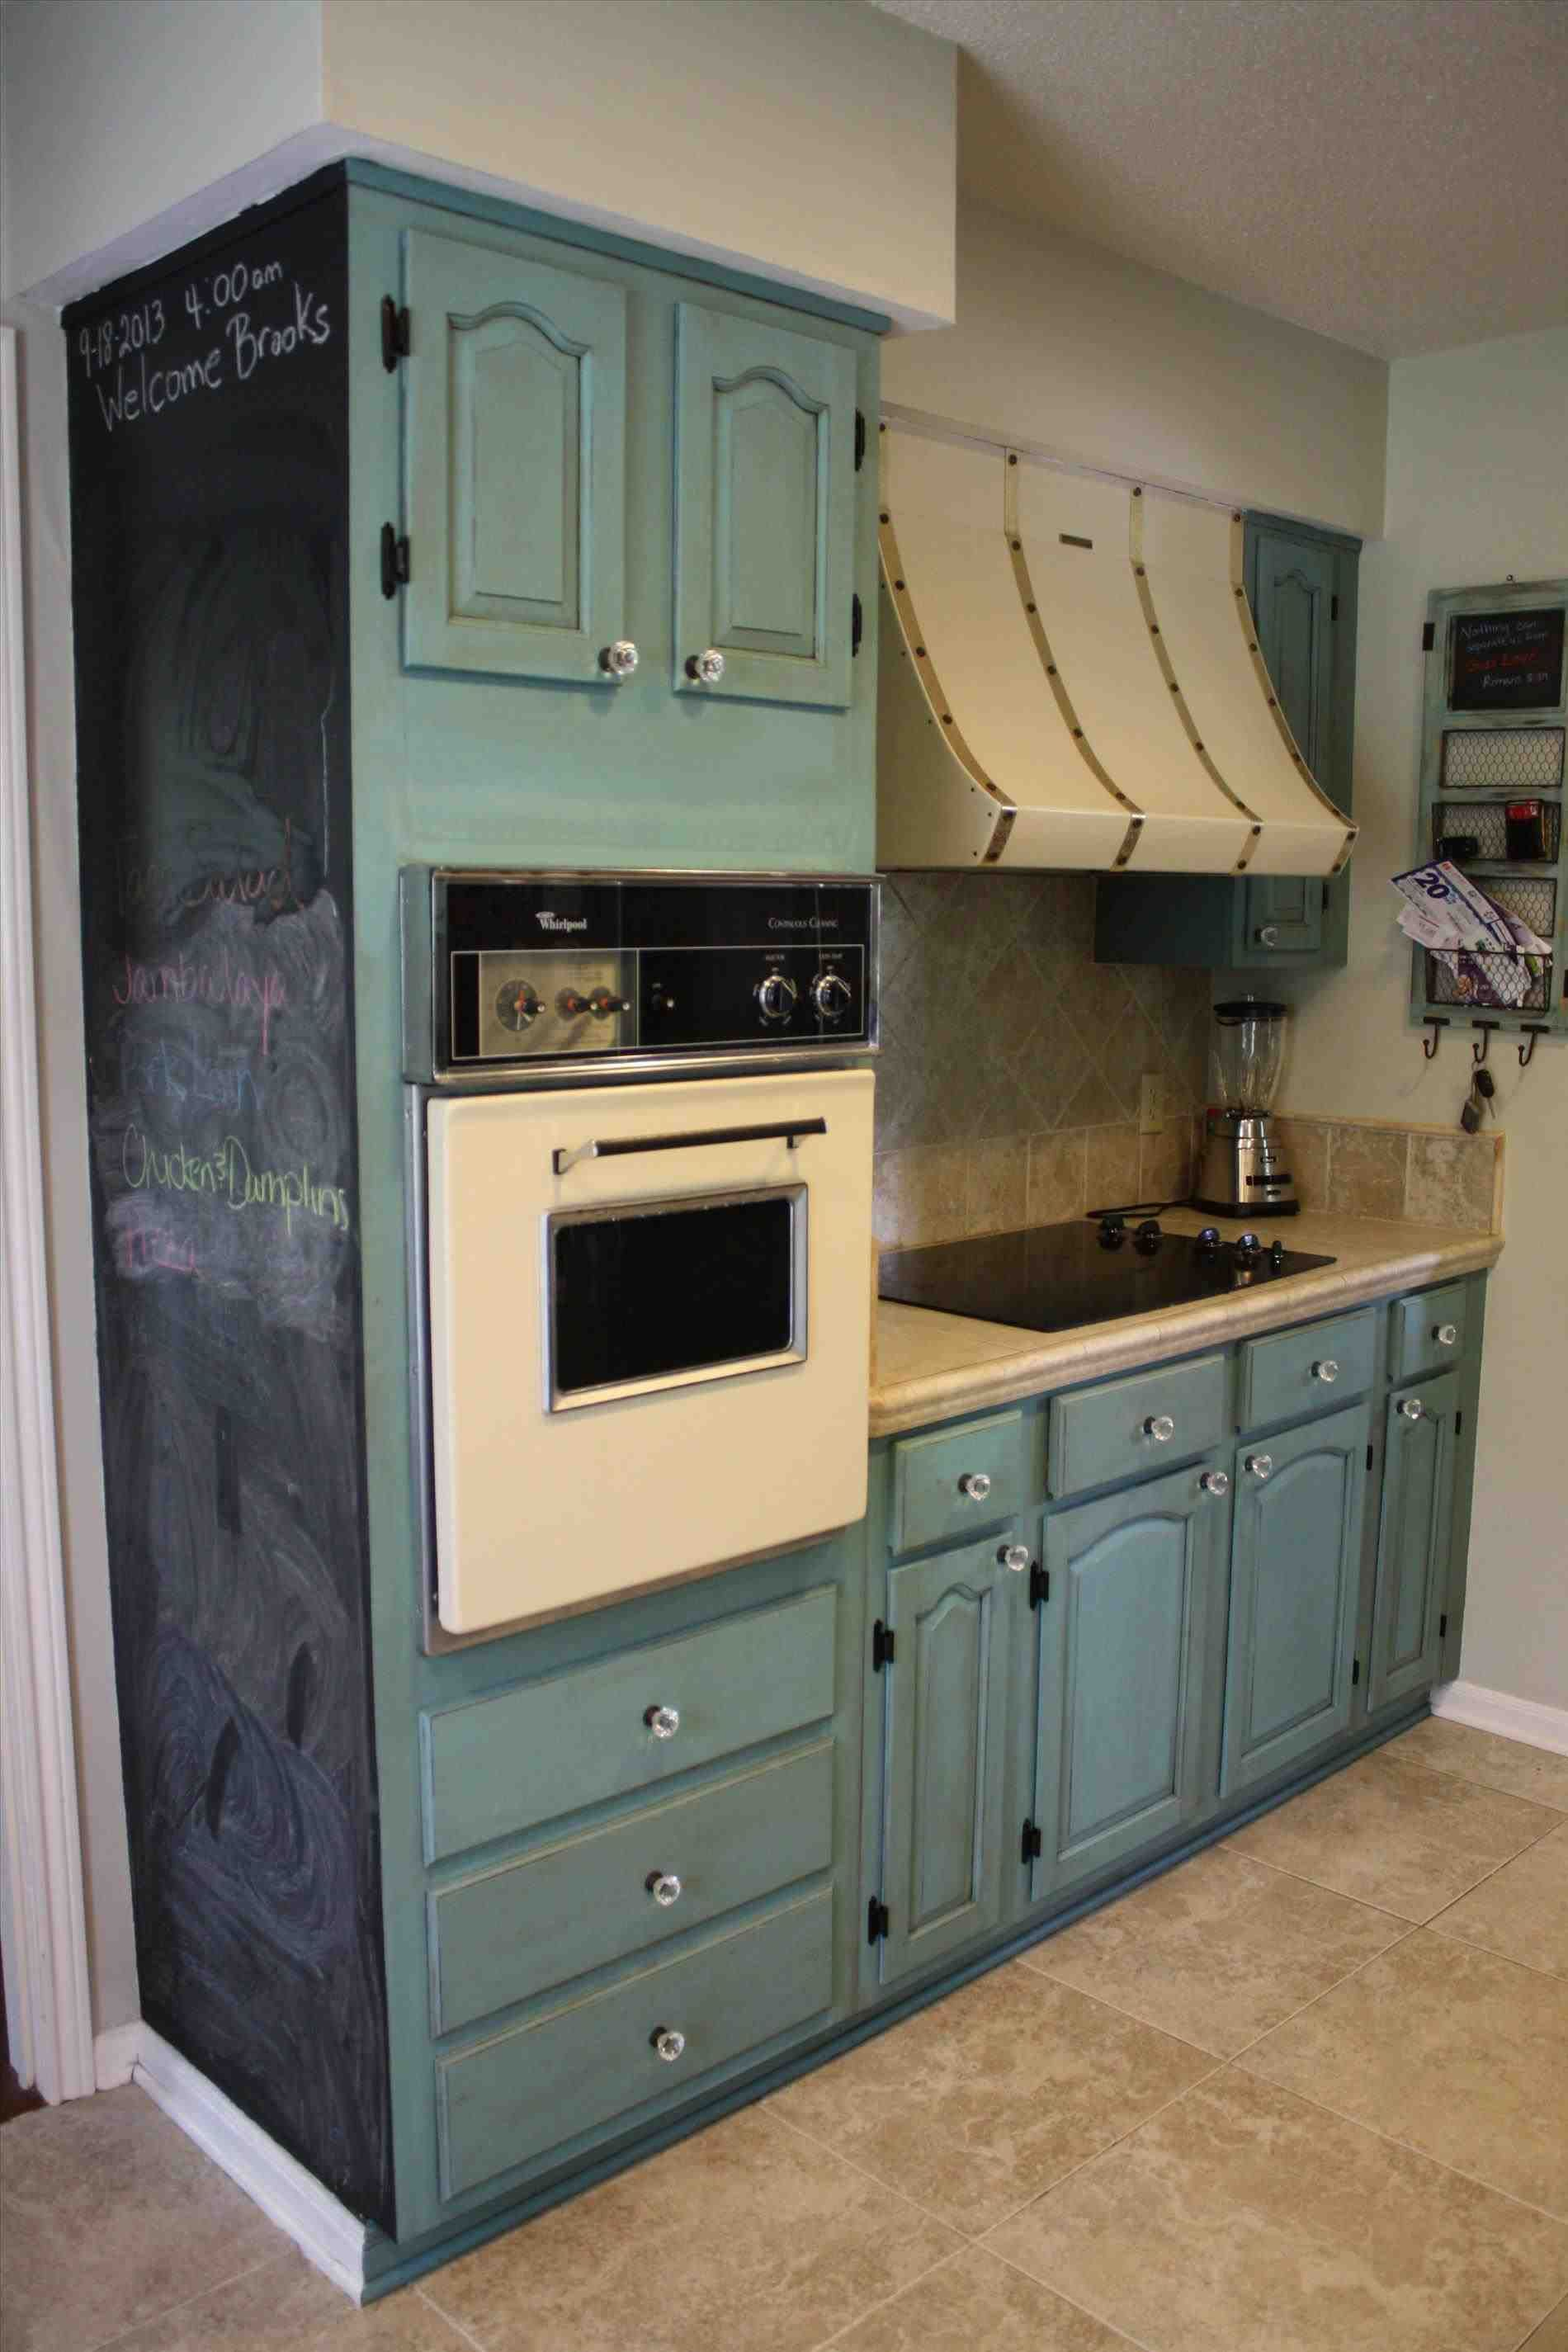 New Post Rustic Turquoise Kitchen Cabinets Annie Sloan Kitchen Cabinets Chalk Paint Kitchen Cabinets Blue Kitchen Cabinets